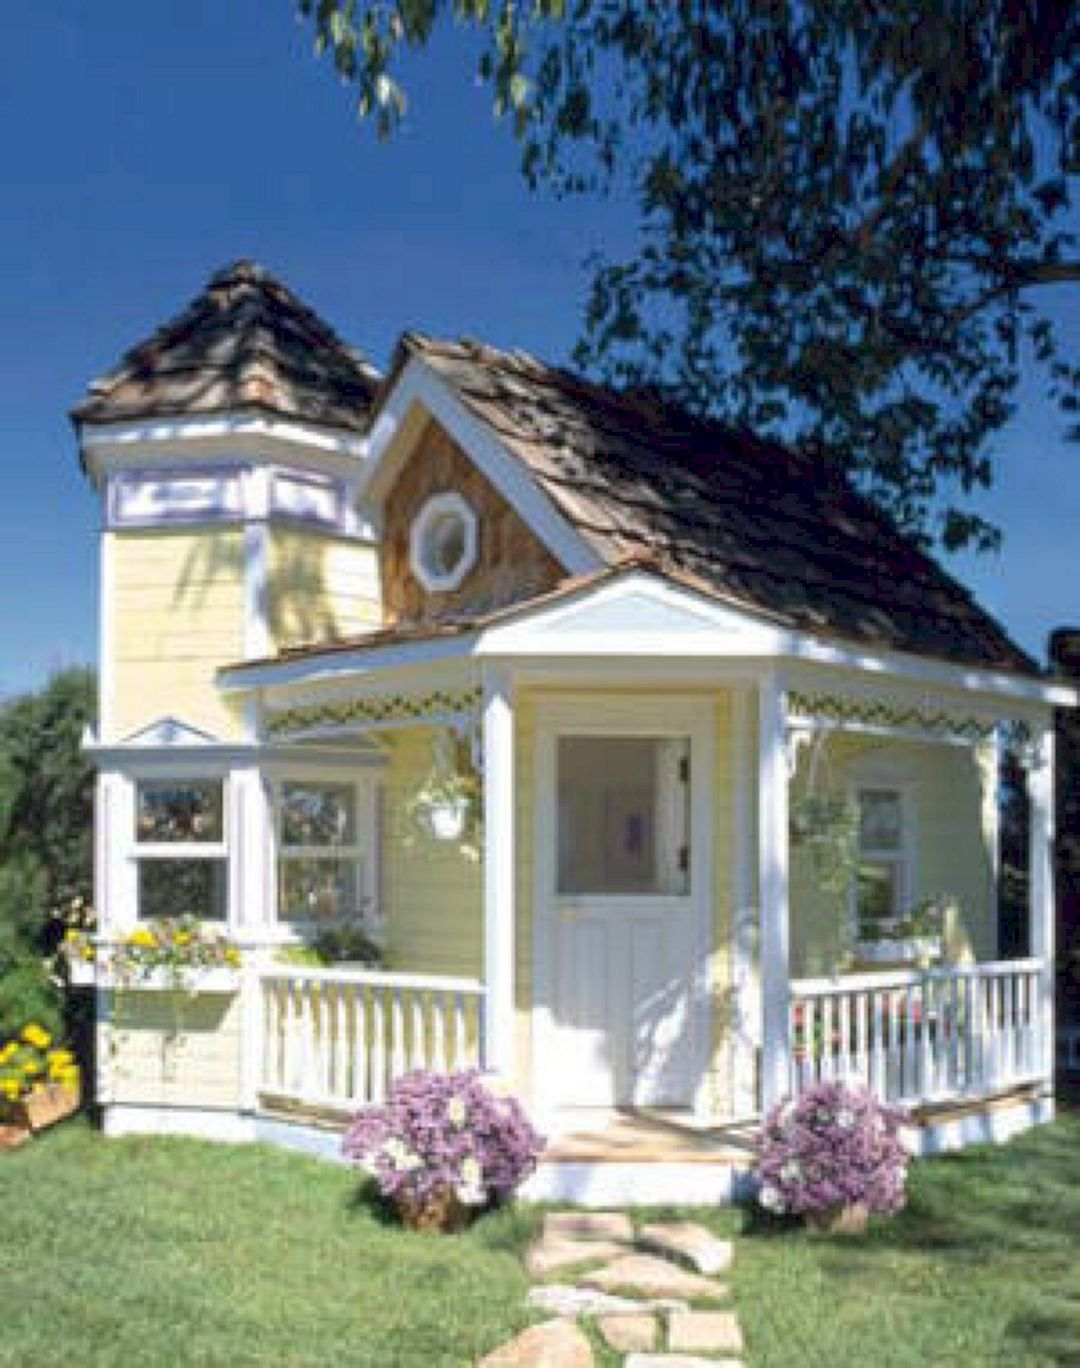 70 Marvelous Tiny Houses Design That Maximize Style and Function ...